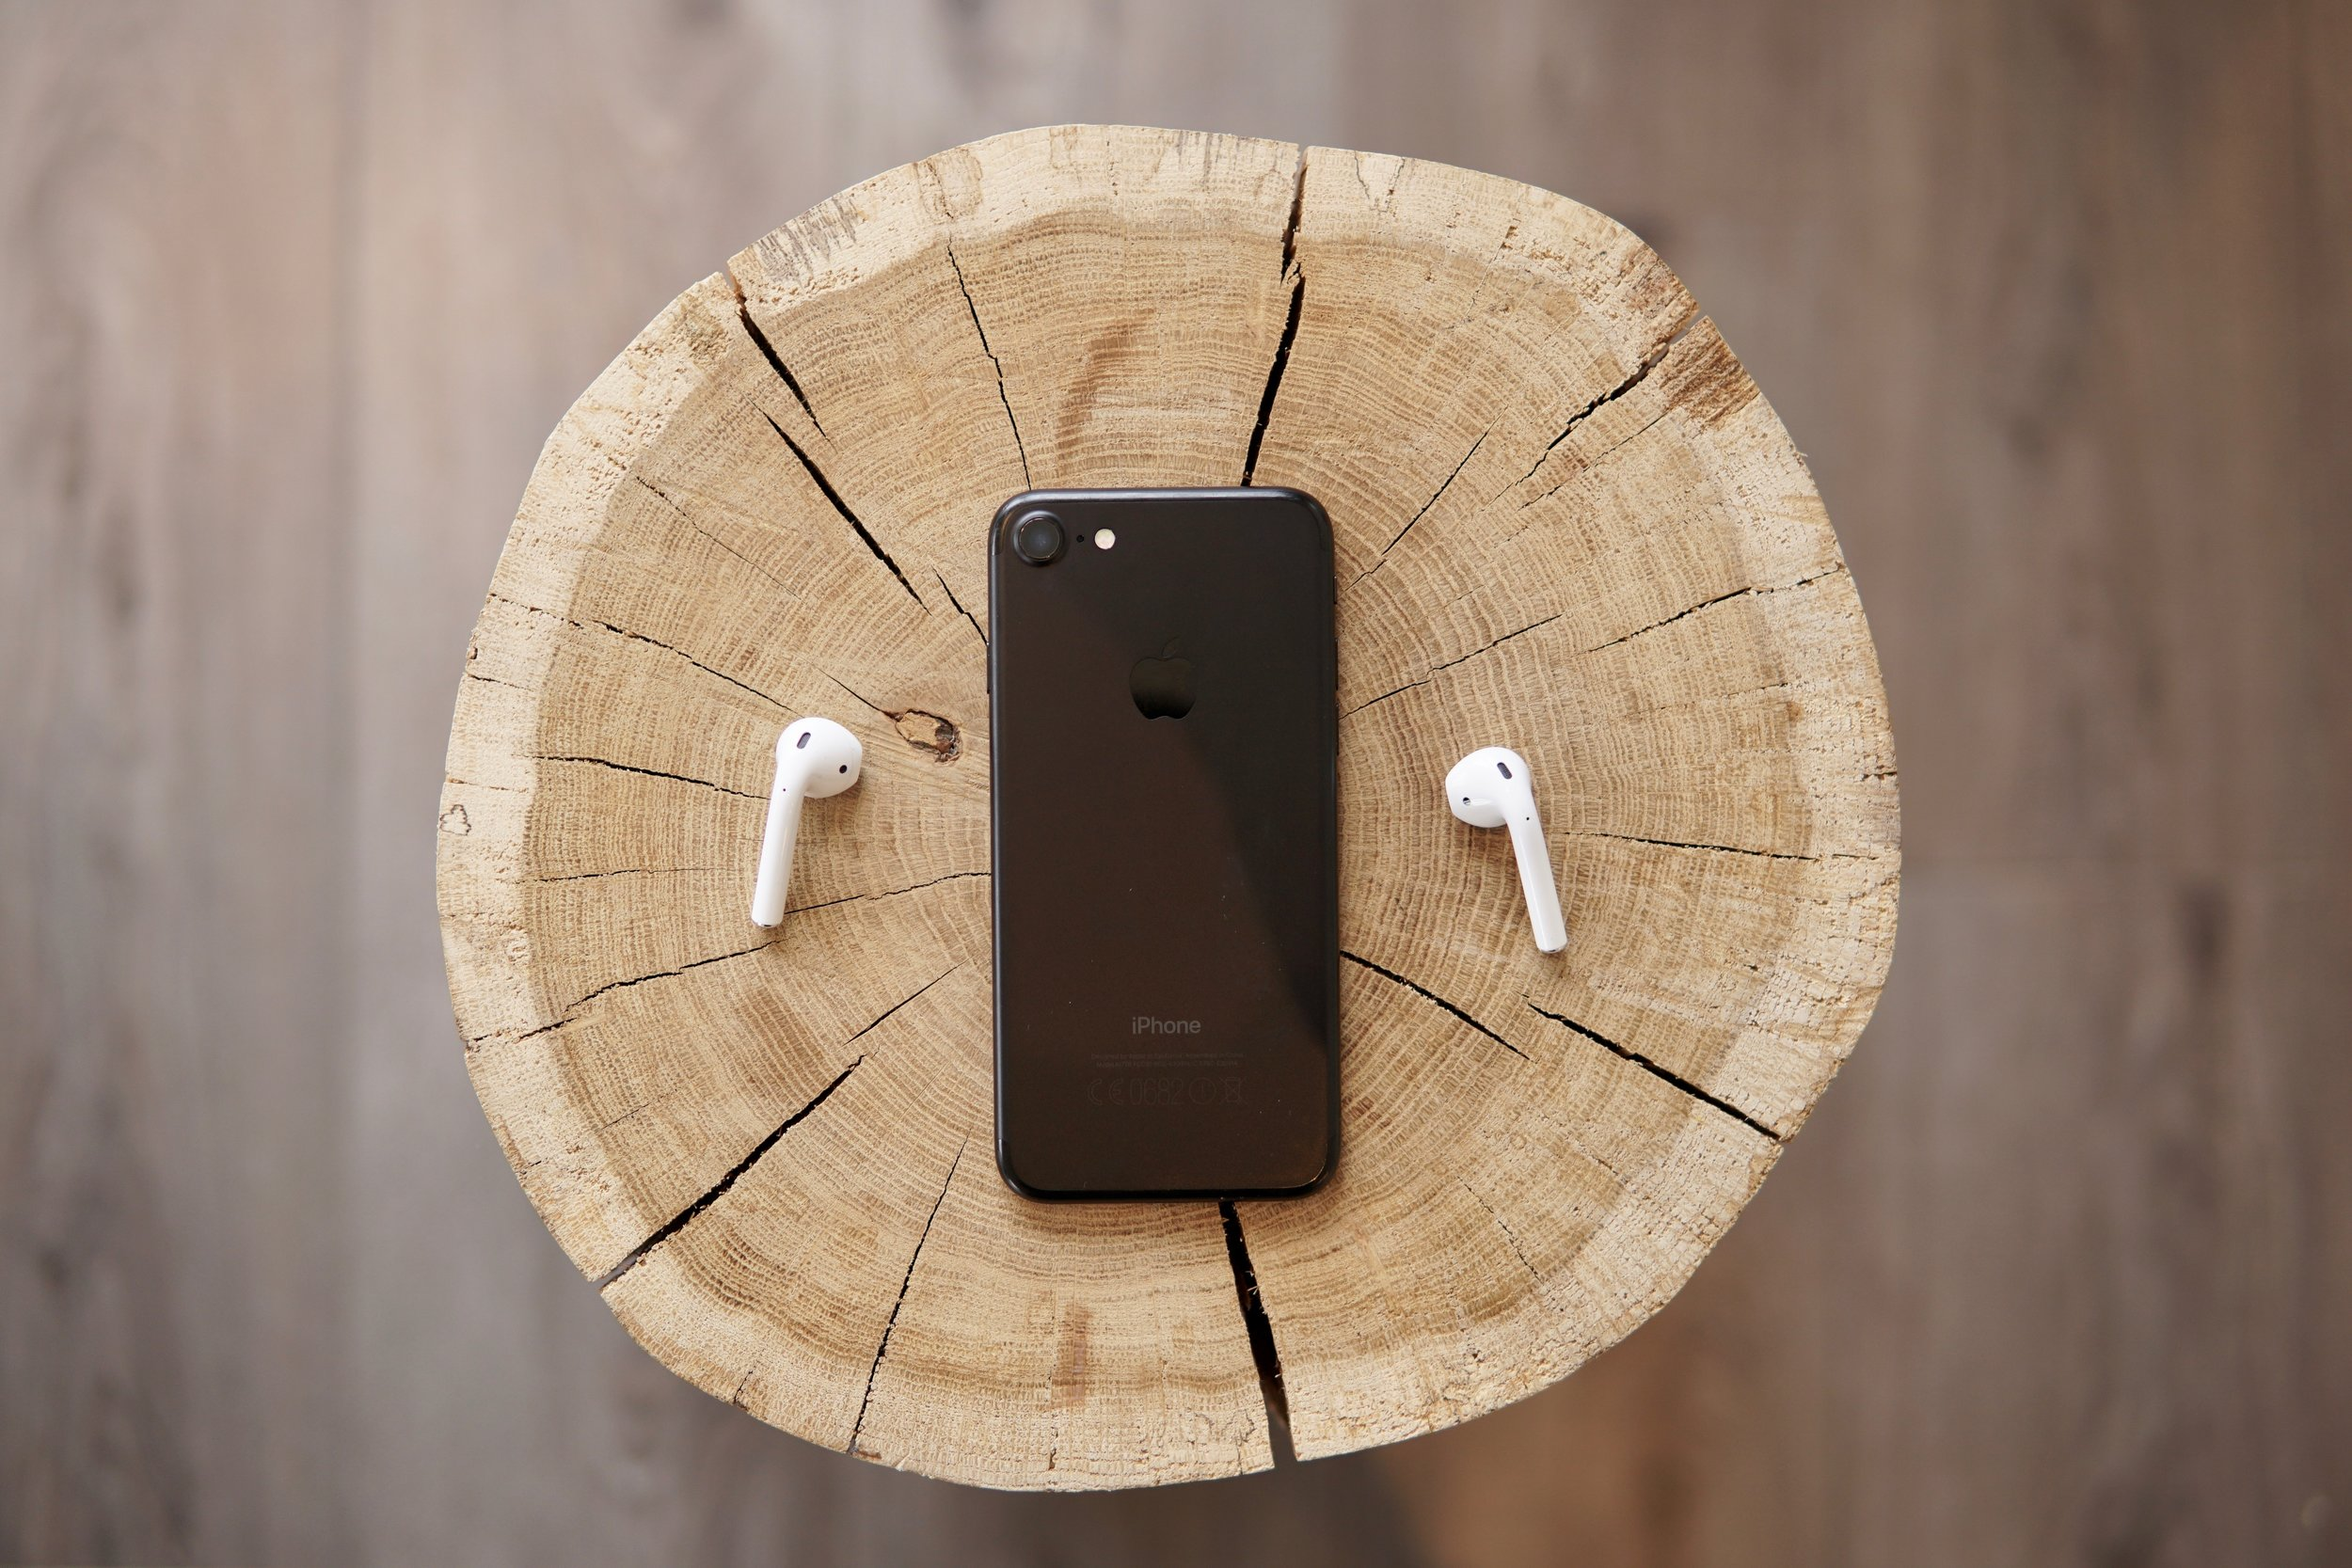 gadgets - The modern man has to be on top of the modern world, so we'll make sure you're in the know with all the state of the art tech that's emerging - plus, some of the fun stuff you might have missed.